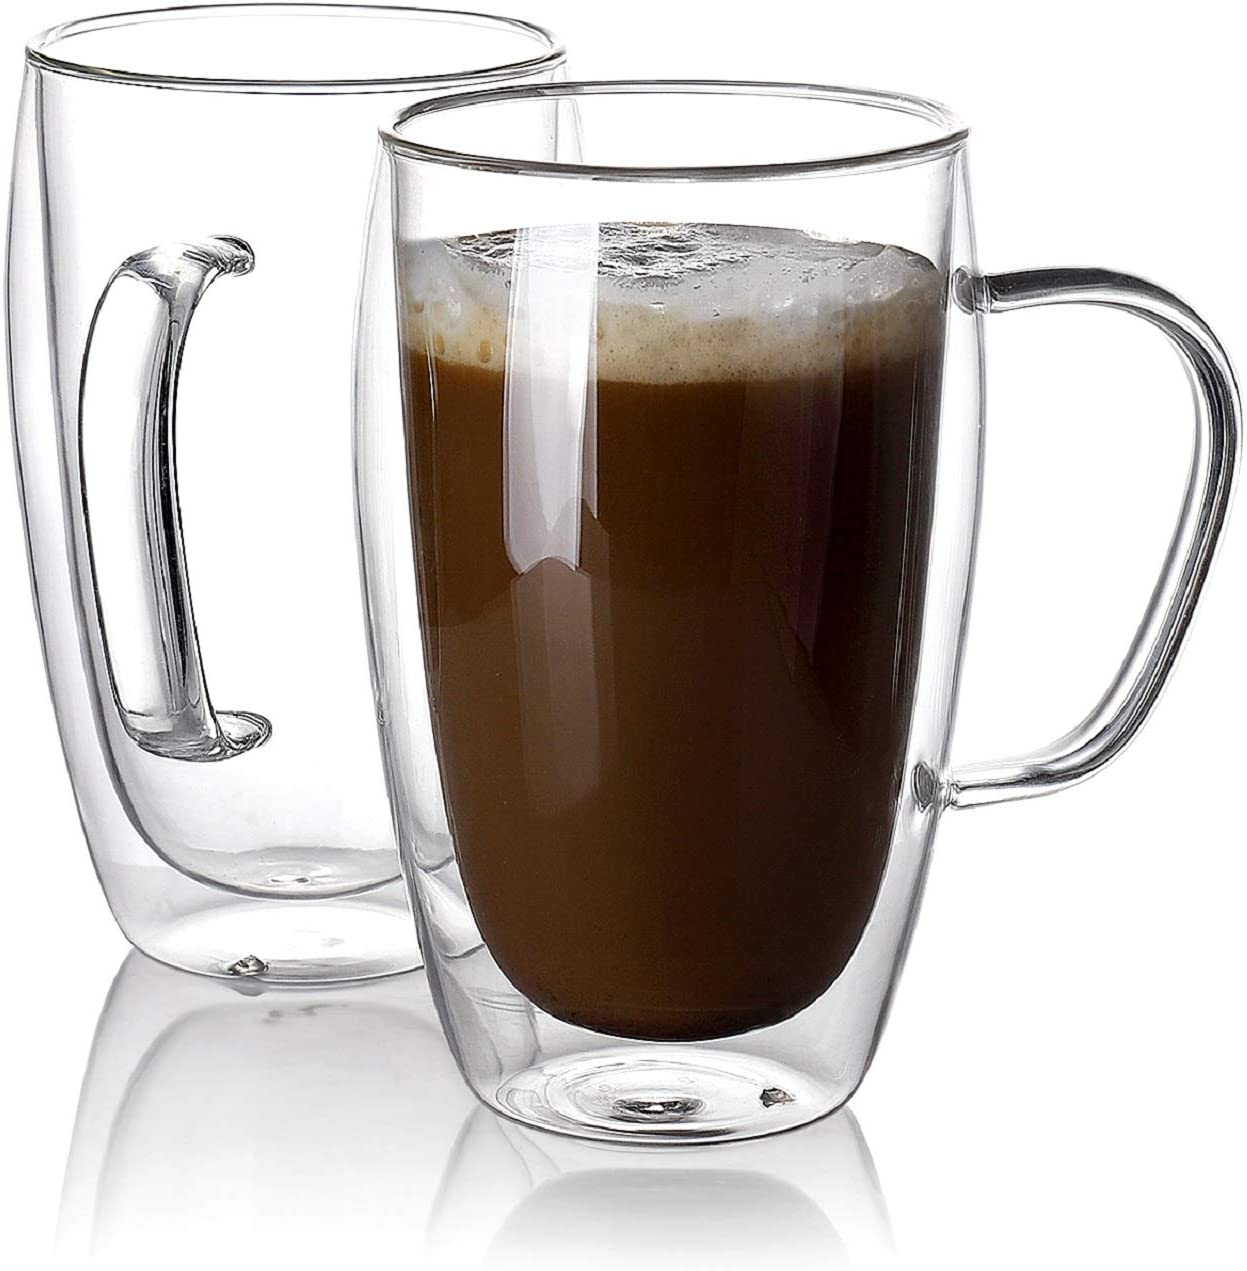 Sweese 416.101 Glass Coffee Mugs Set of 2 Super popular specialty store Ins Wall - Double Tall Attention brand